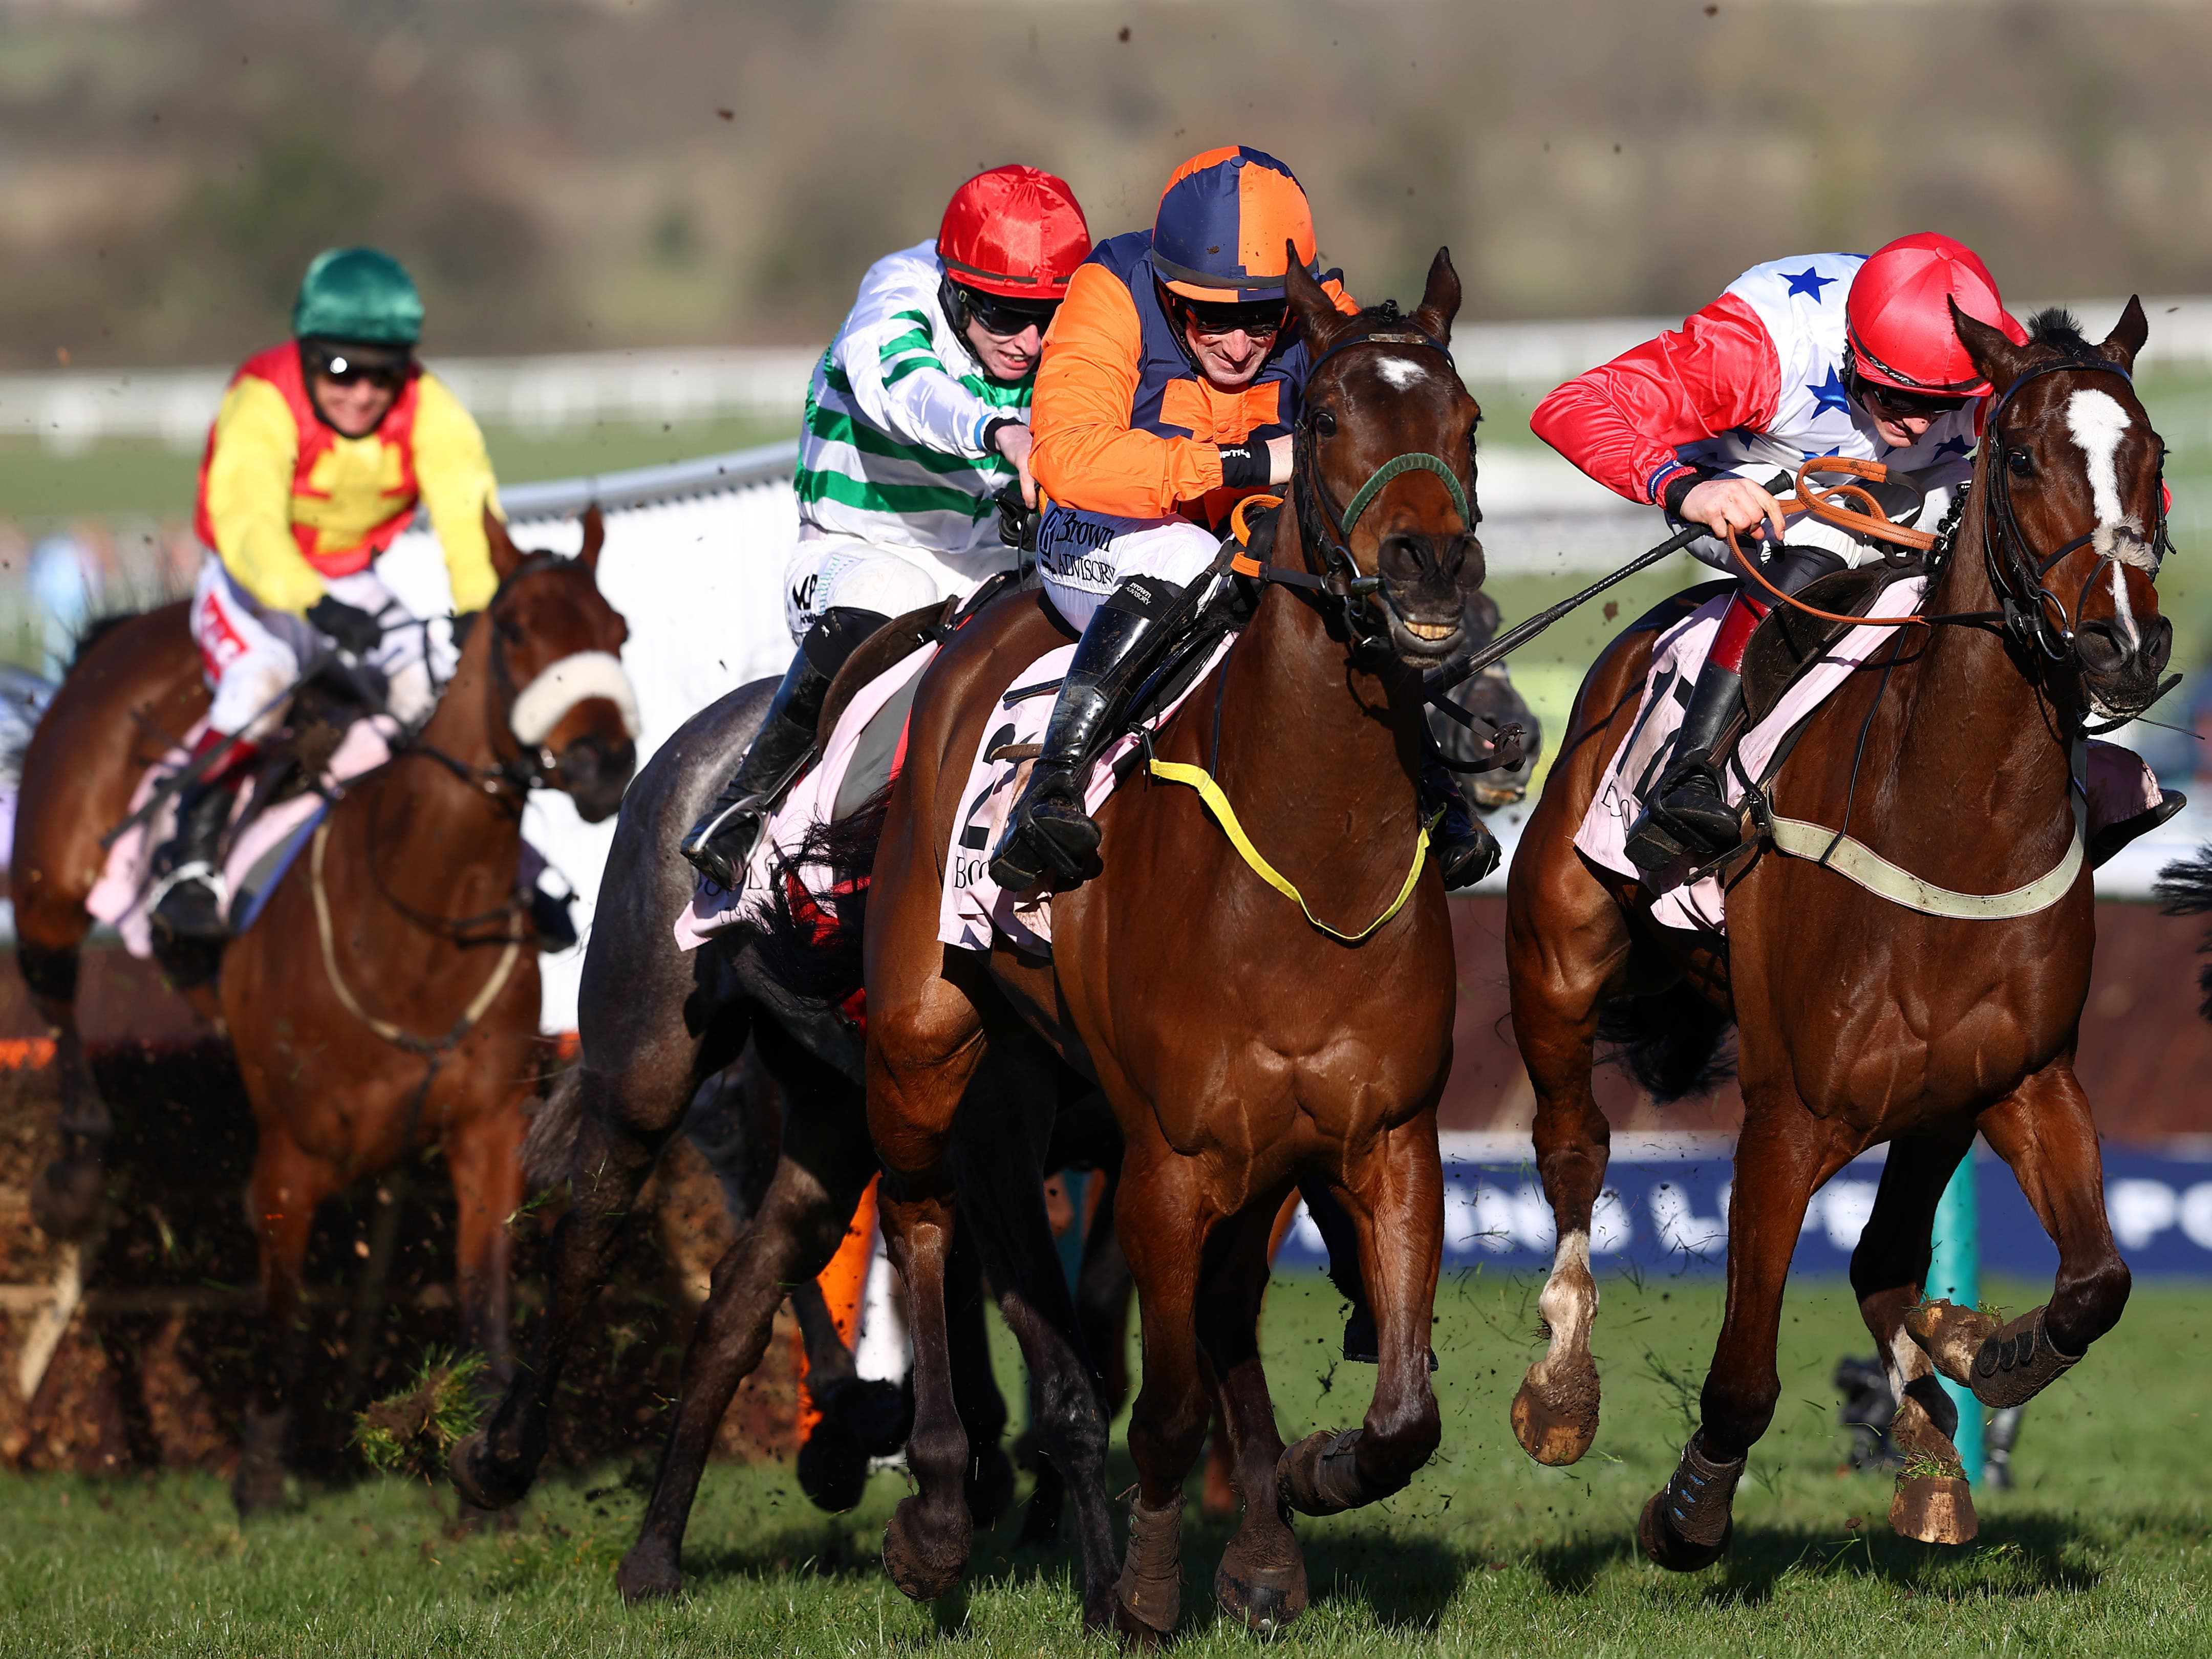 Jeff Kidder (second right) on his way to victory at Cheltenham (Michael Steele/PA)